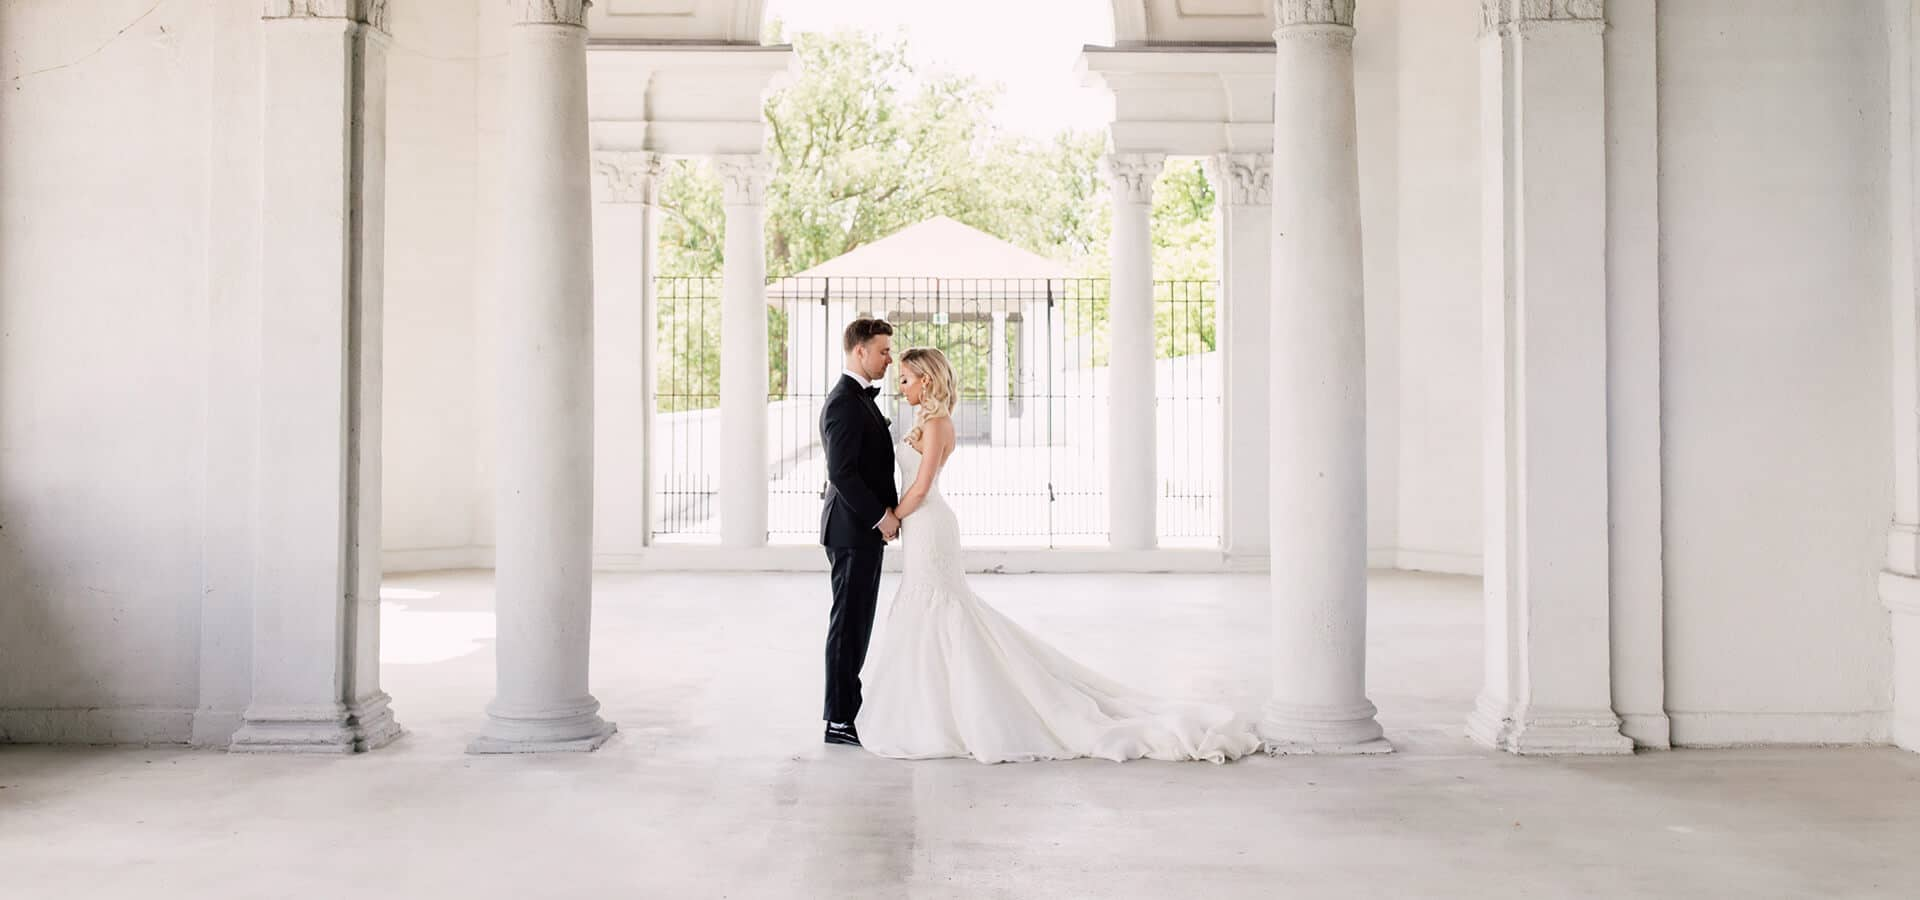 Hero image for Andrea and Andrew's Rustic-yet-Luxe Wedding at Tralee Wedding Facility